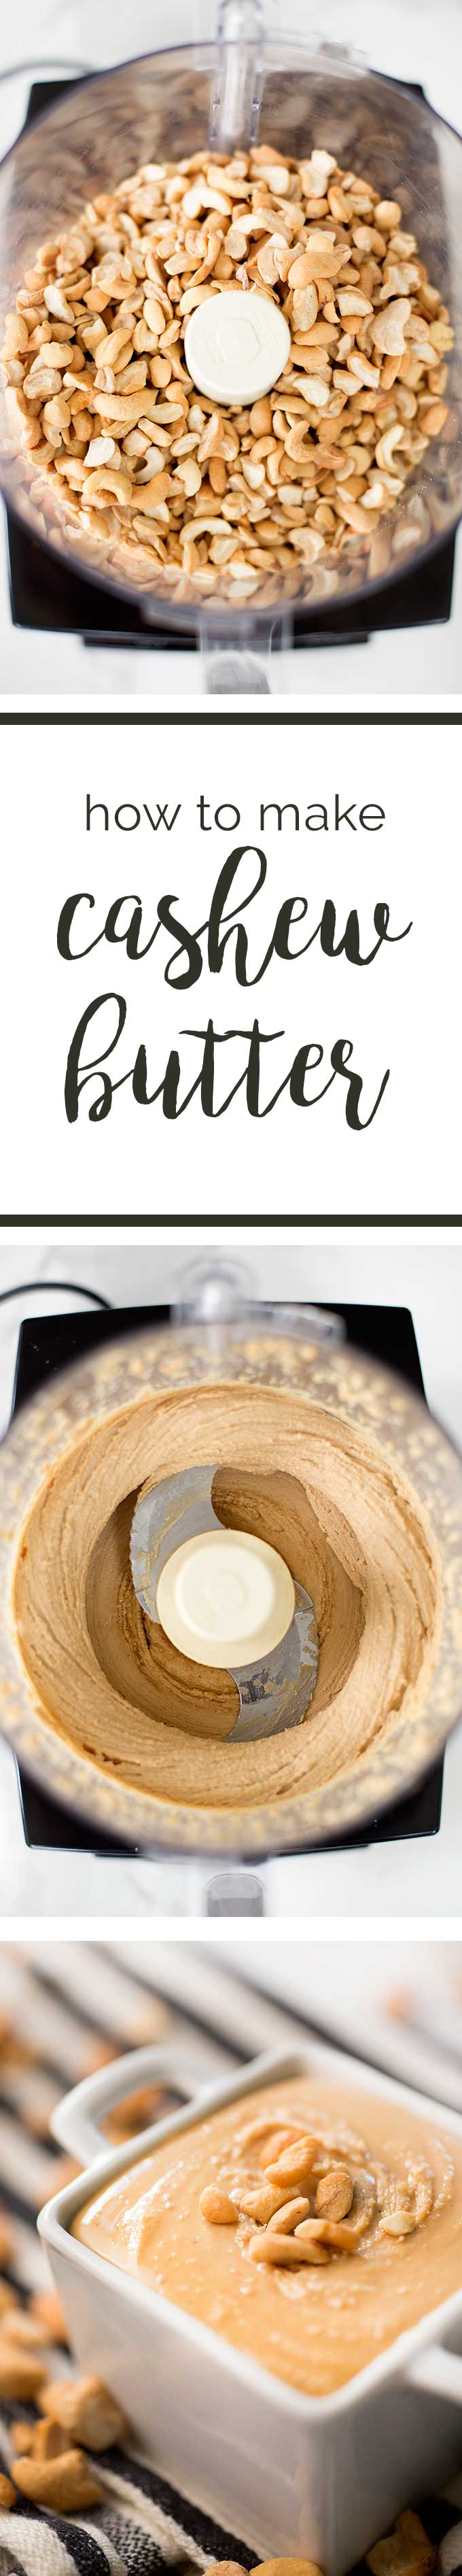 How to Make Cashew Butter: Combine cashews with a taste of maple syrup, salt and vanilla, and blend until smooth for a perfect peanut butter alternative.